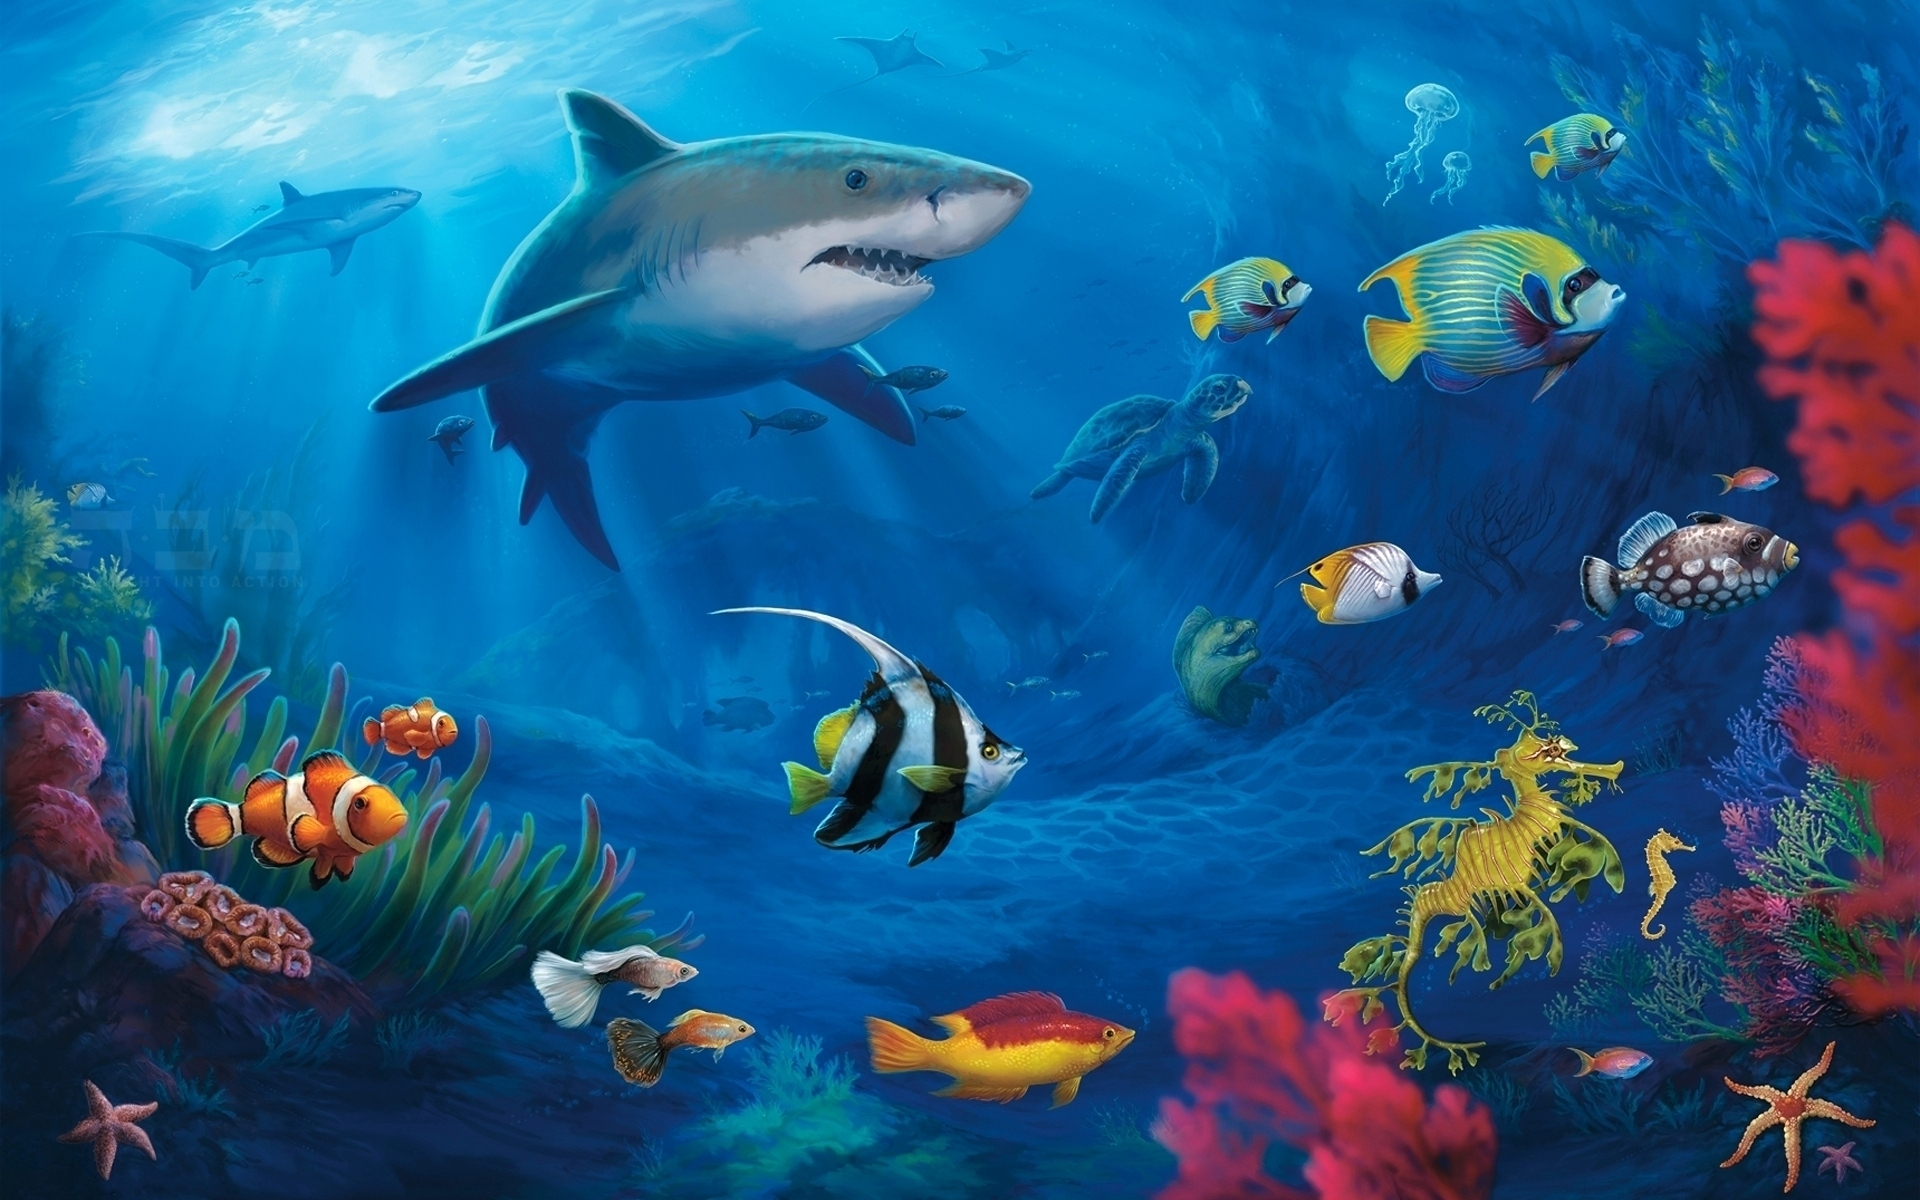 underwater world hd wallpaper. - media file | pixelstalk